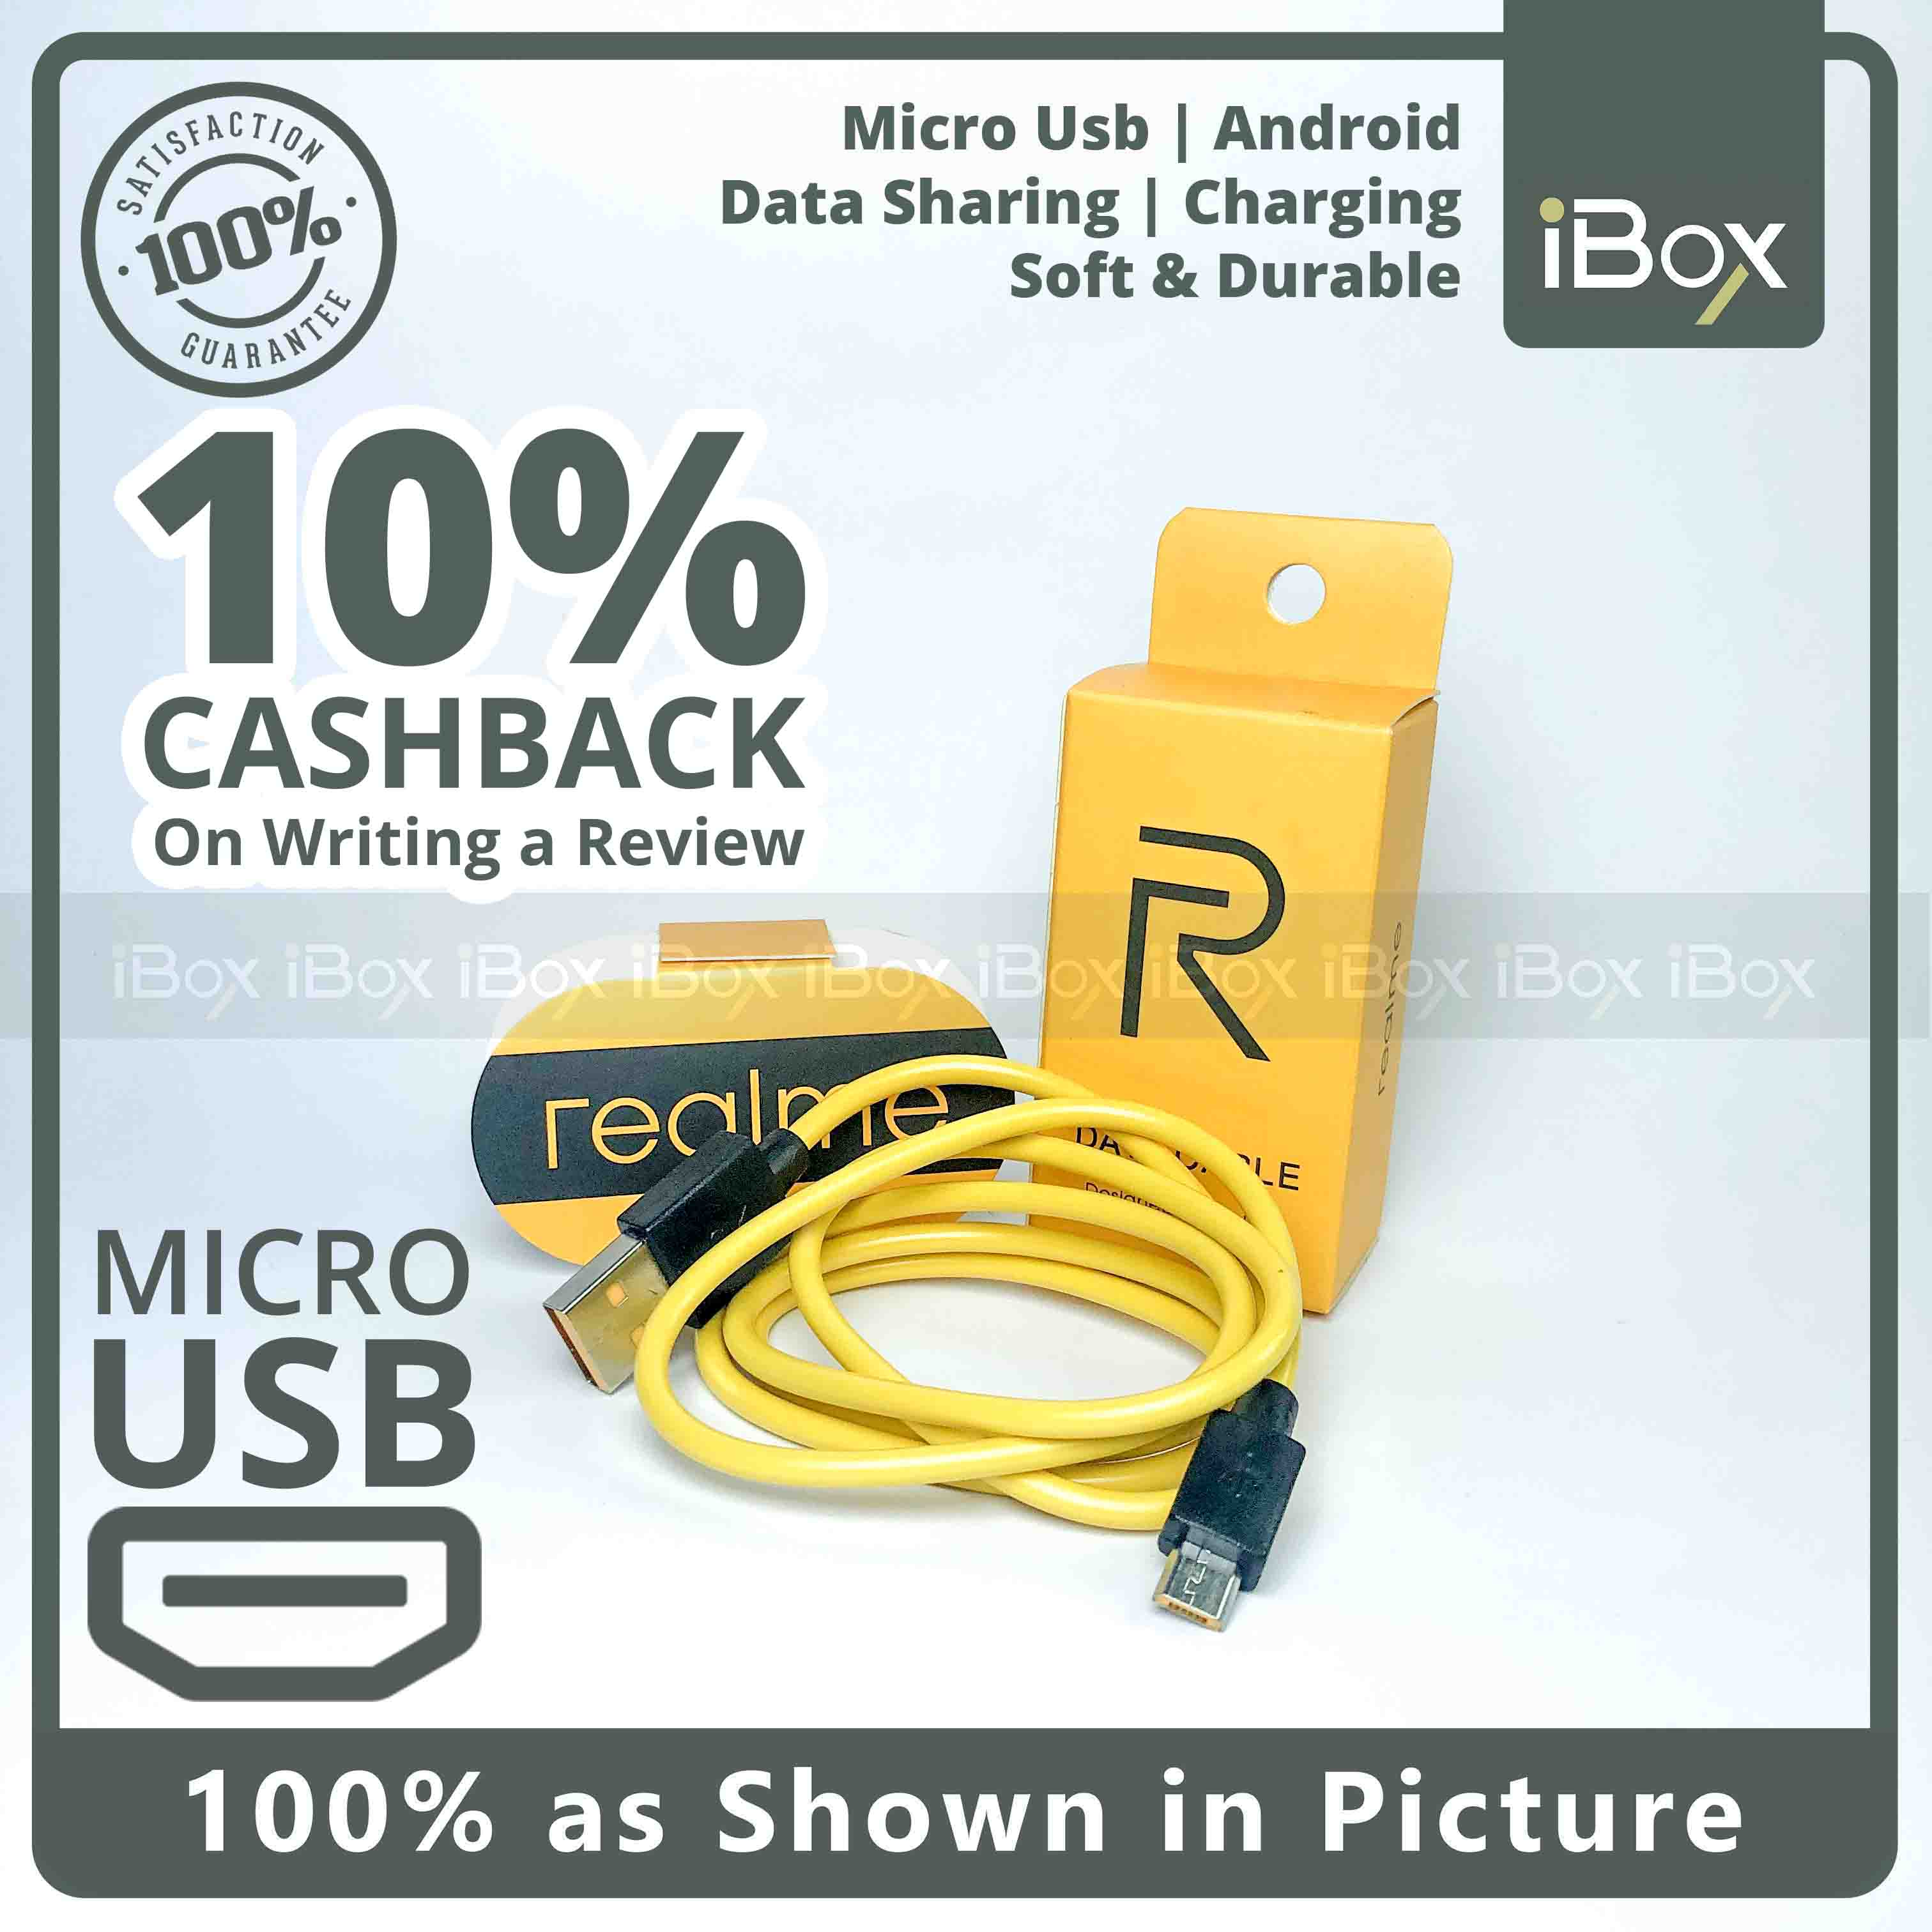 Real Me Android Data Cable Micro USB Data Sharing and Fast Charging Cable - Yellow and Black - Durable